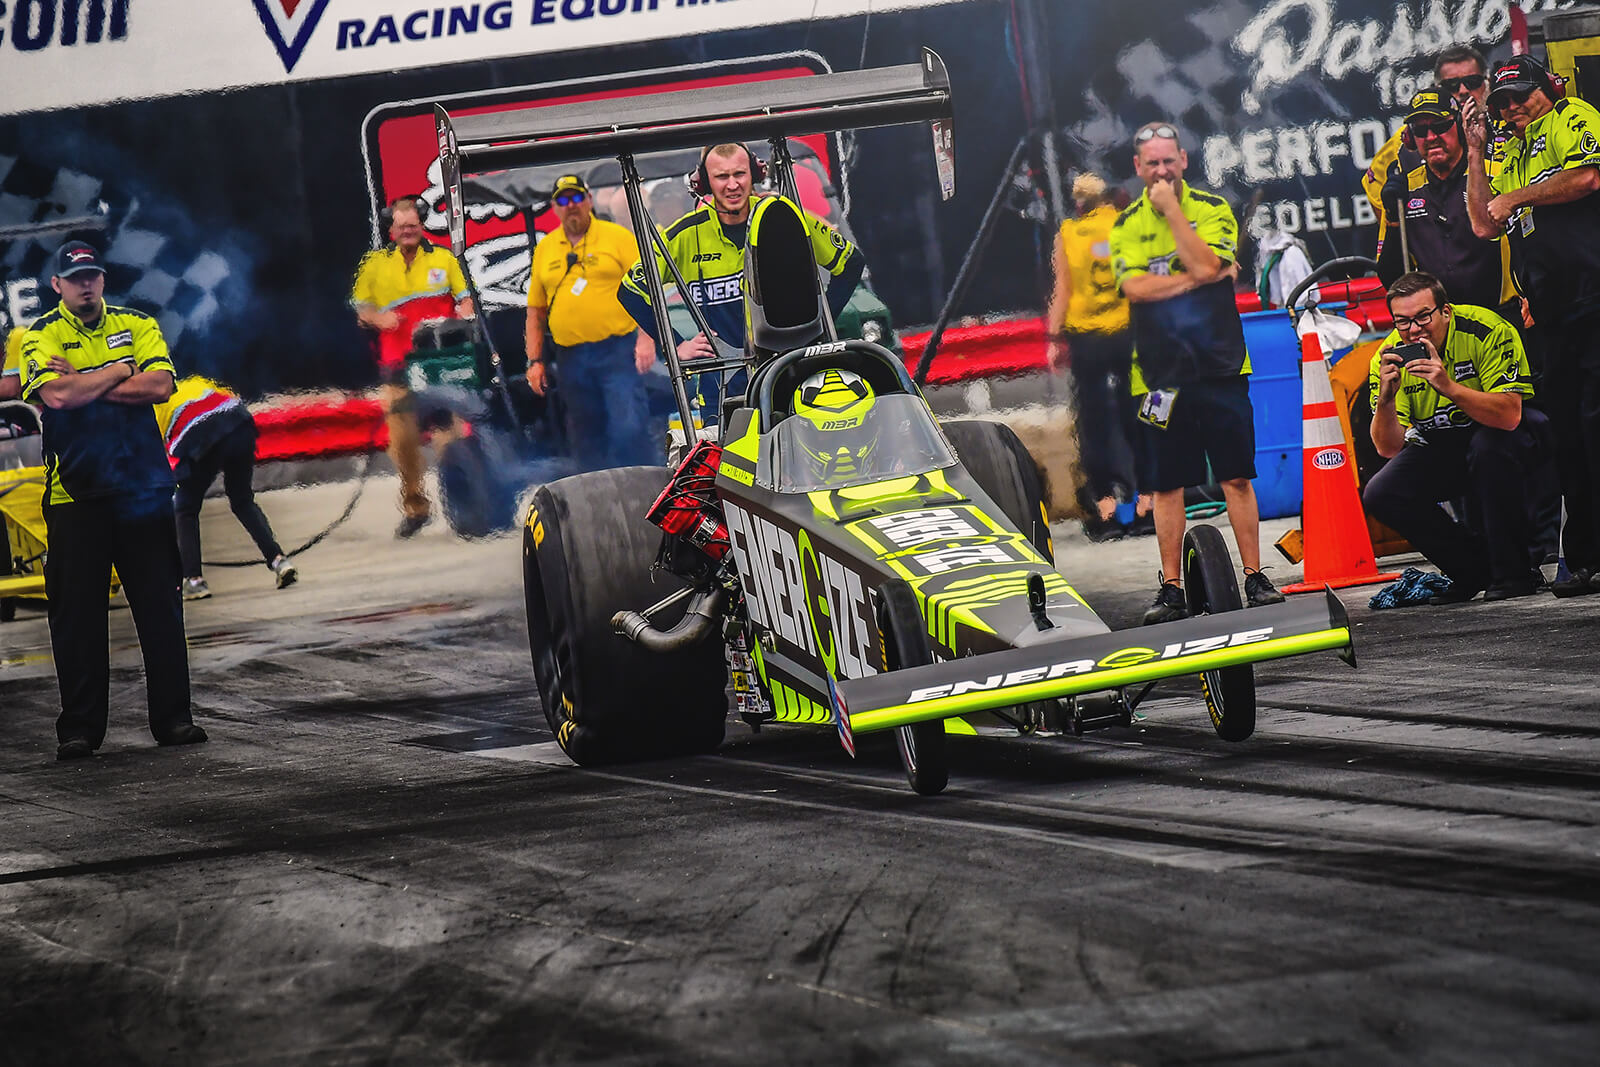 MBR Primed for Under the Lights Showdown at 2018 Night Under Fire